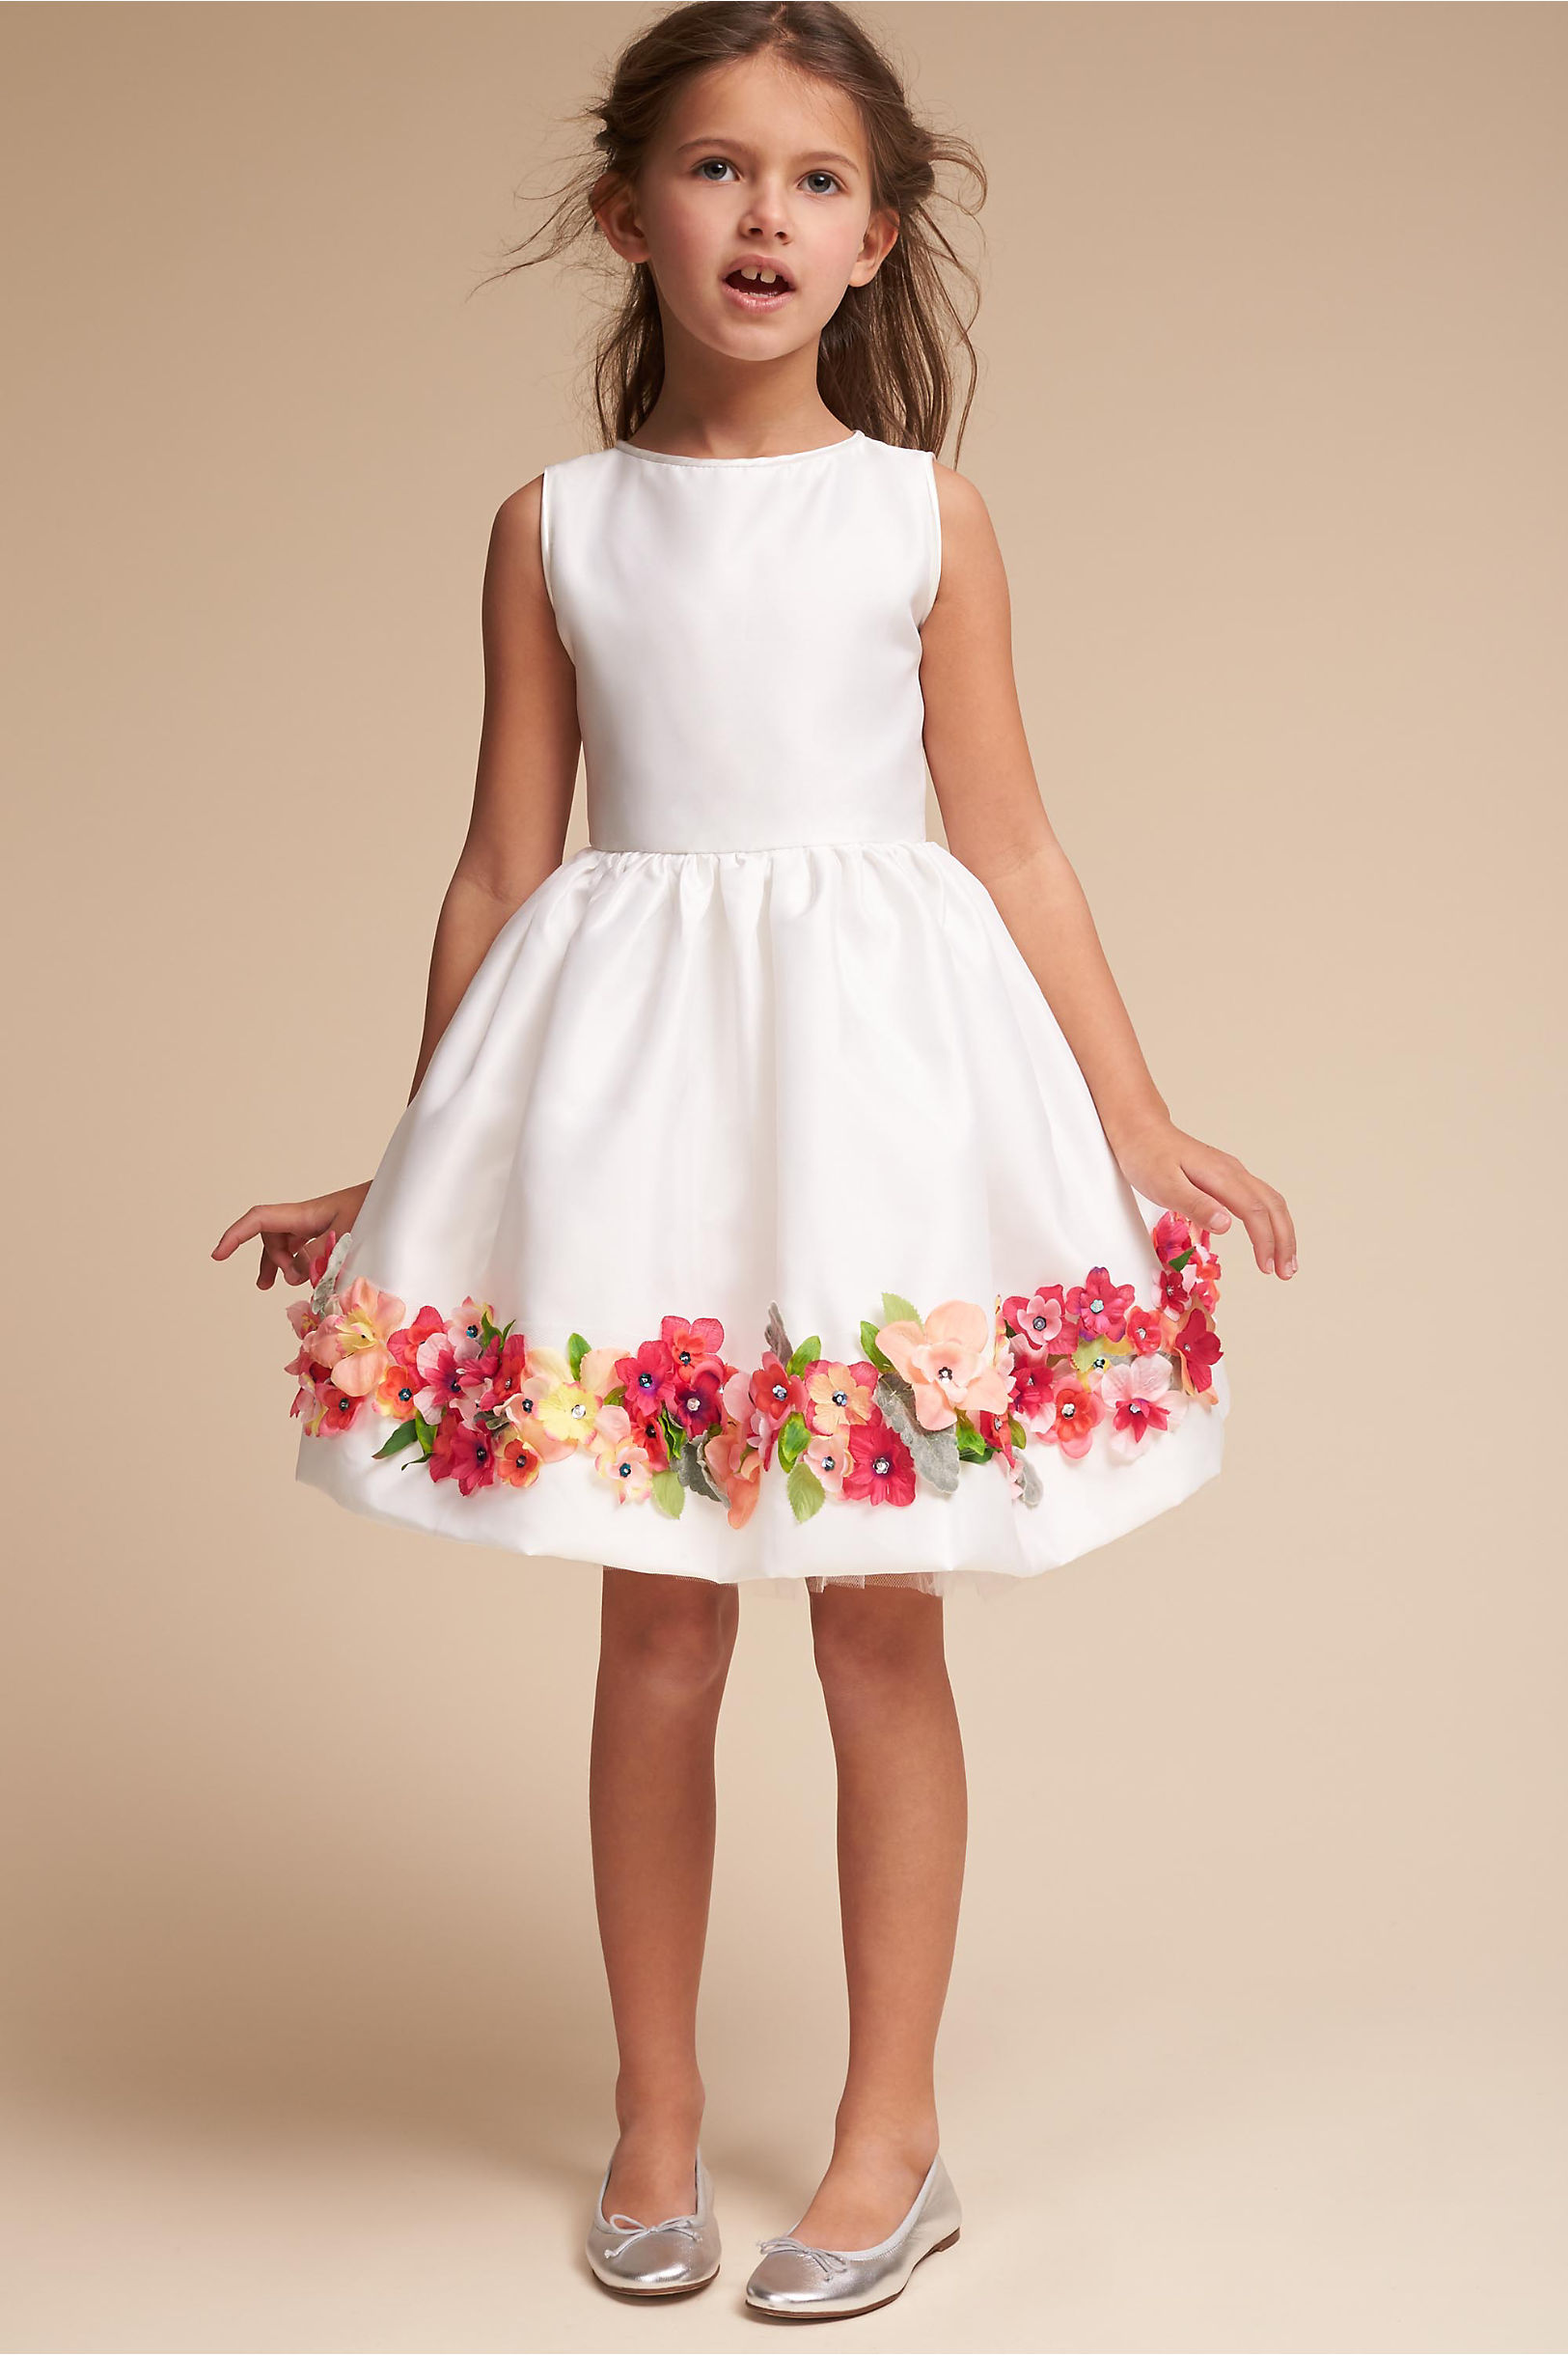 Shop girlsâ dresses that are perfect for formal or casual events. Whether she needs a sun dress for a warm summer day or a formal dress for a special occasion, you can find all the little girlsâ dresses she needs for a well-rounded wardrobe.